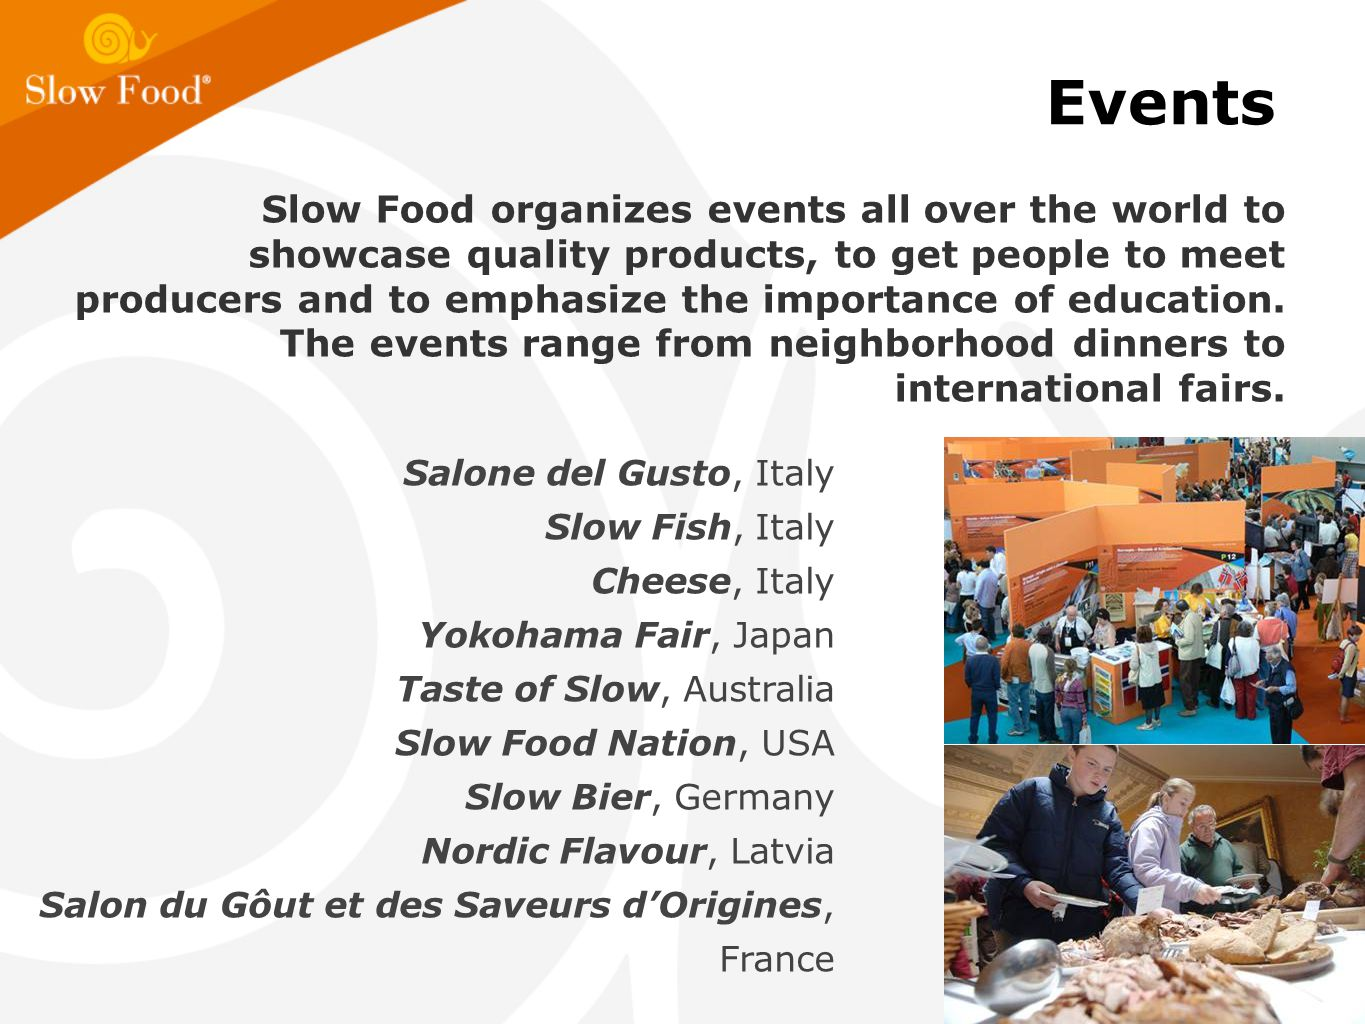 Events Slow Food organizes events all over the world to showcase quality products, to get people to meet producers and to emphasize the importance of education.